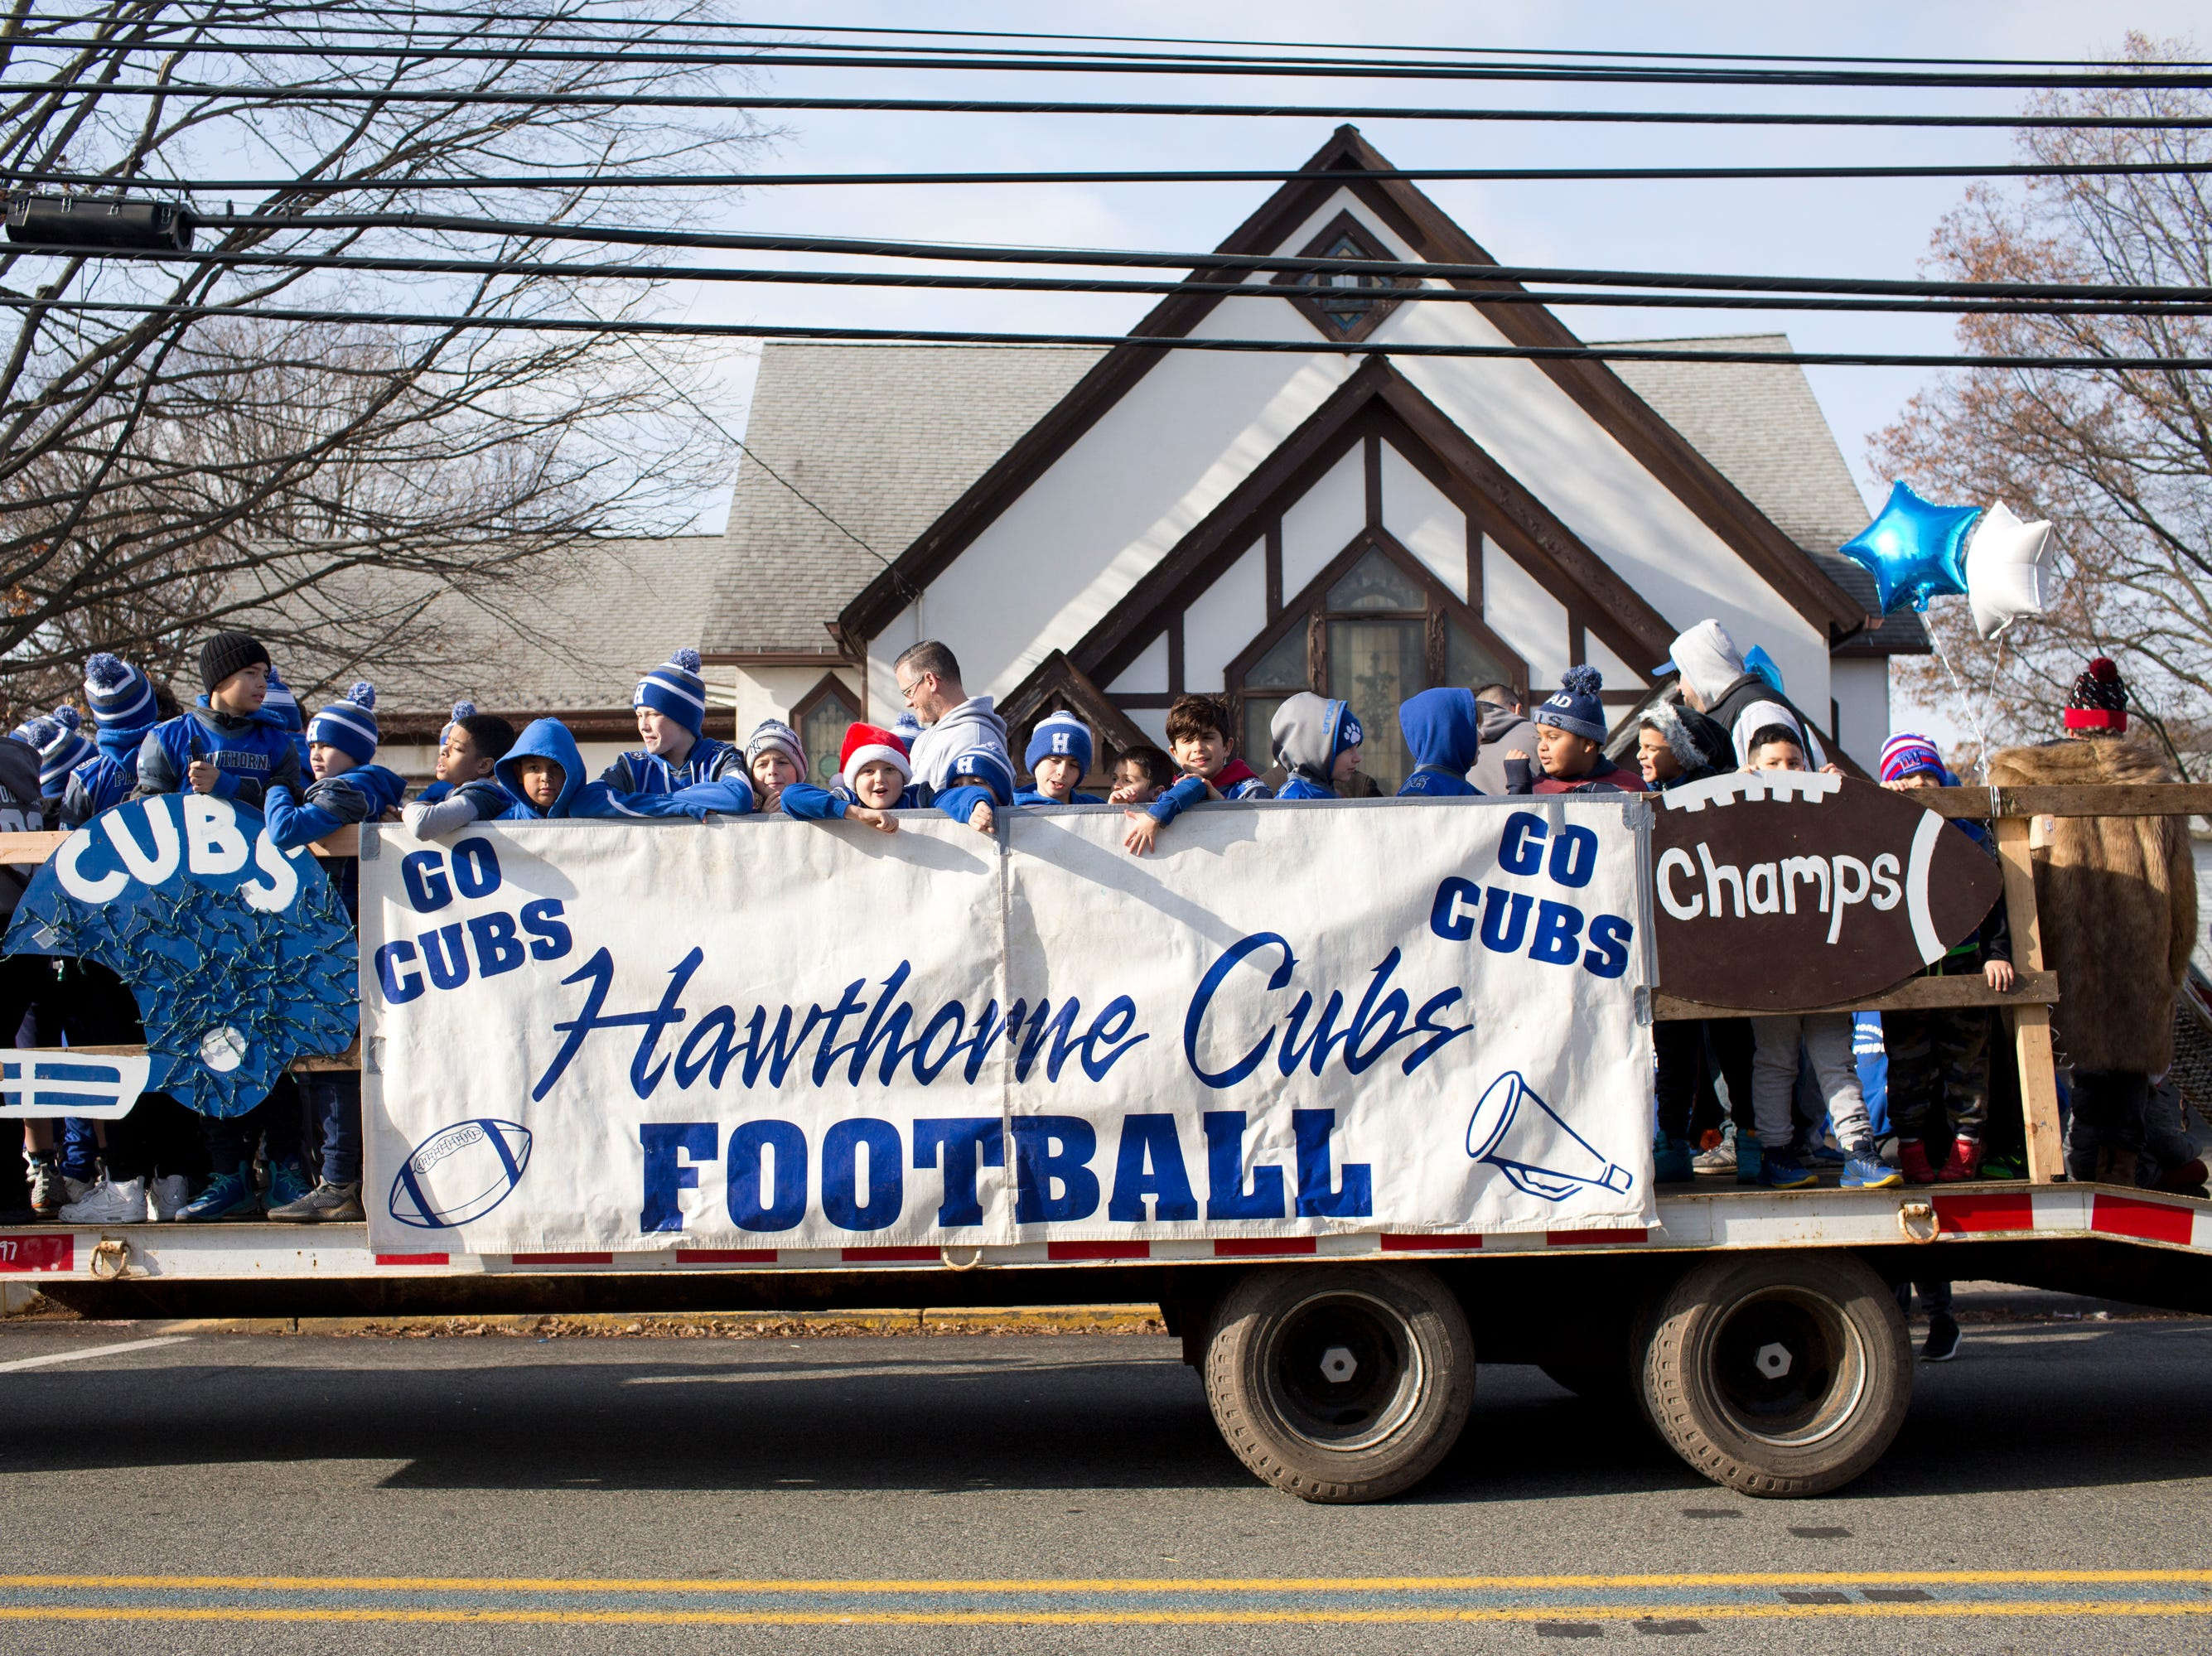 The Hawthorne Cubs Football float makes its way down Lafayette Avenue during the 33rd Annual Santa Parade in Hawthorne on Saturday, Dec. 1, 2018.